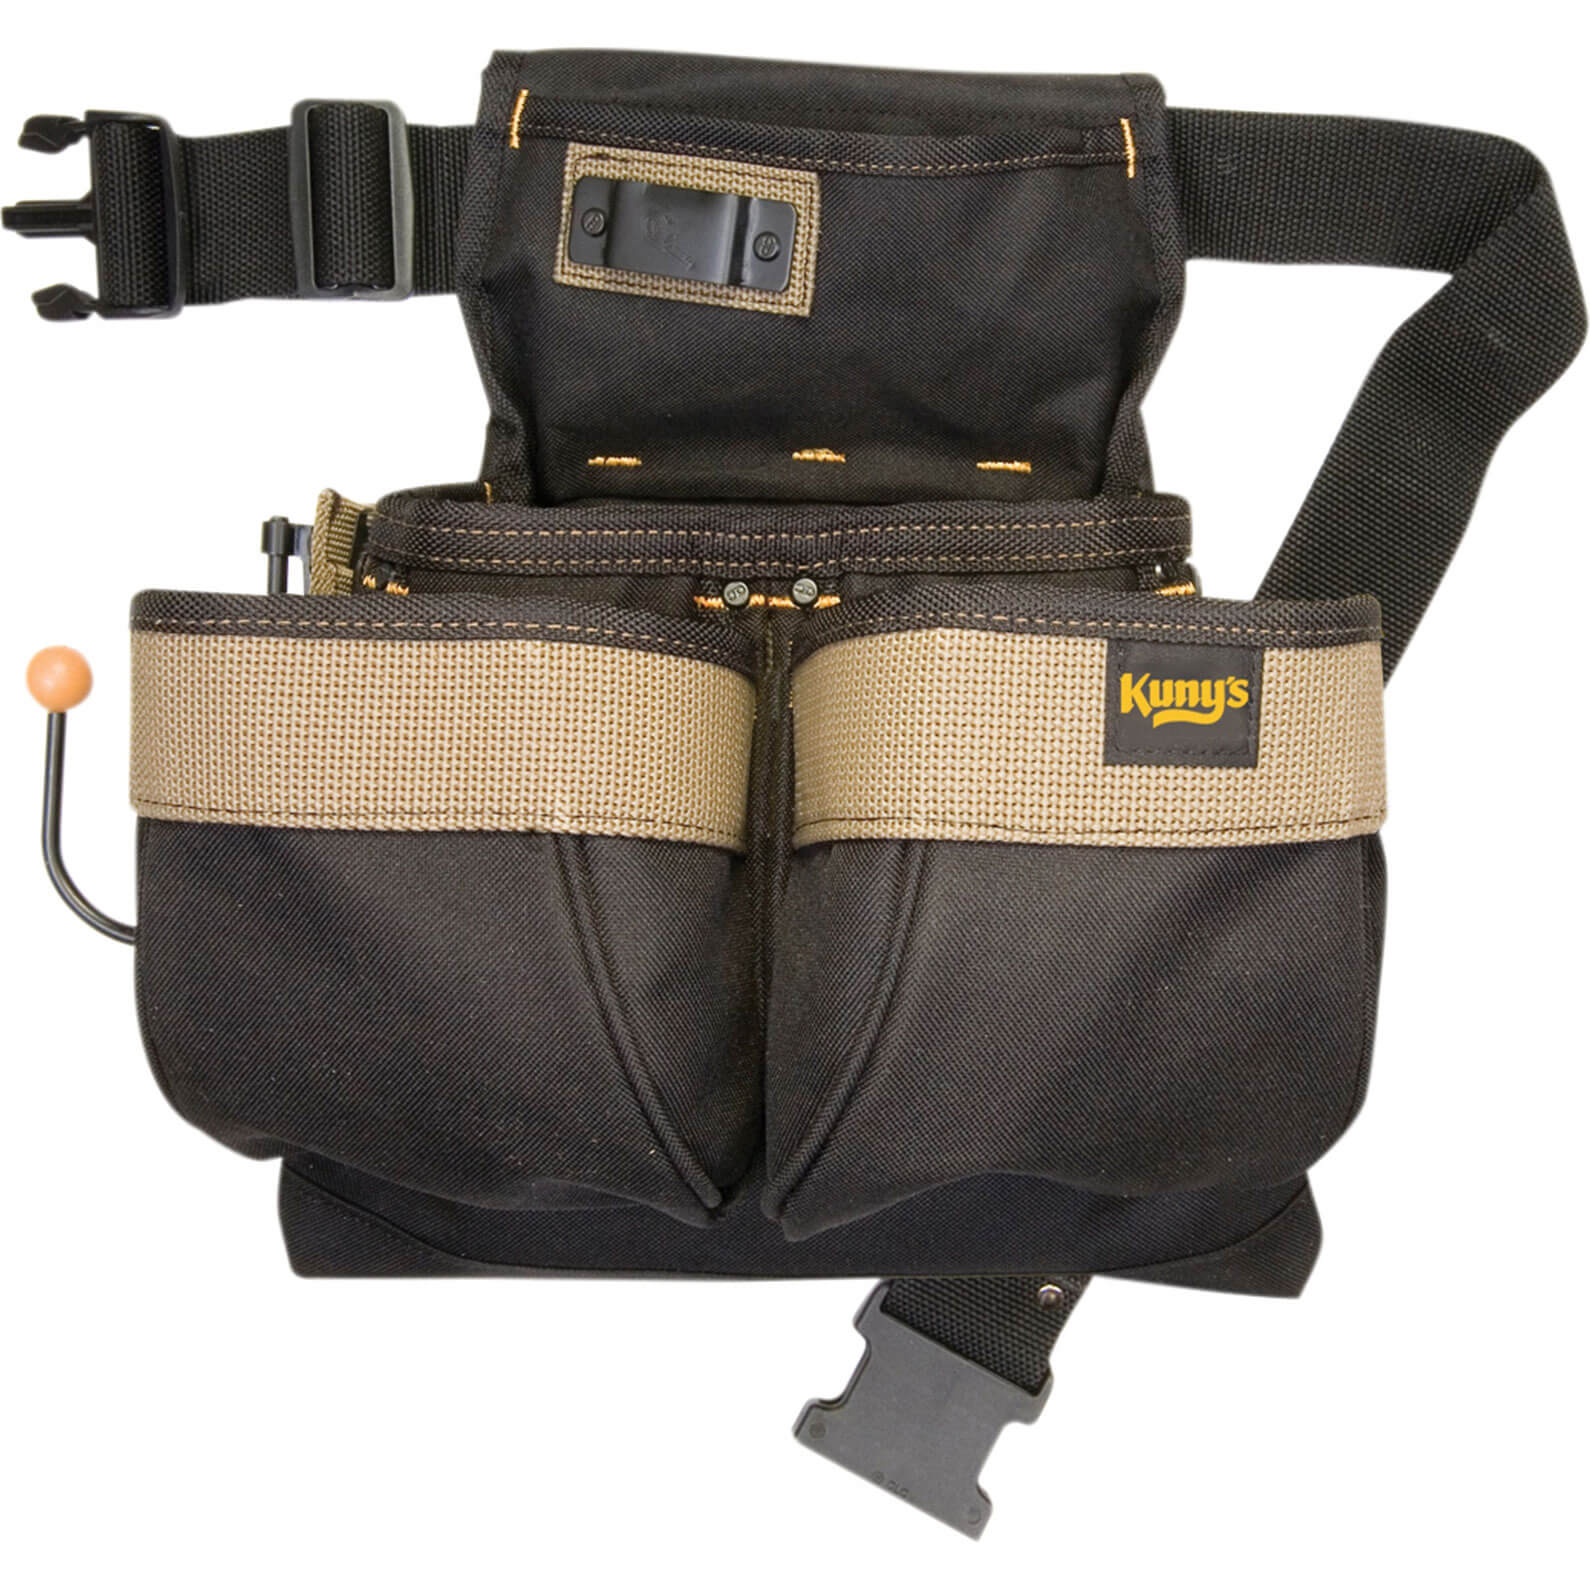 Image of Kunys 5 Pocket Framers Nail & Tool Pouch